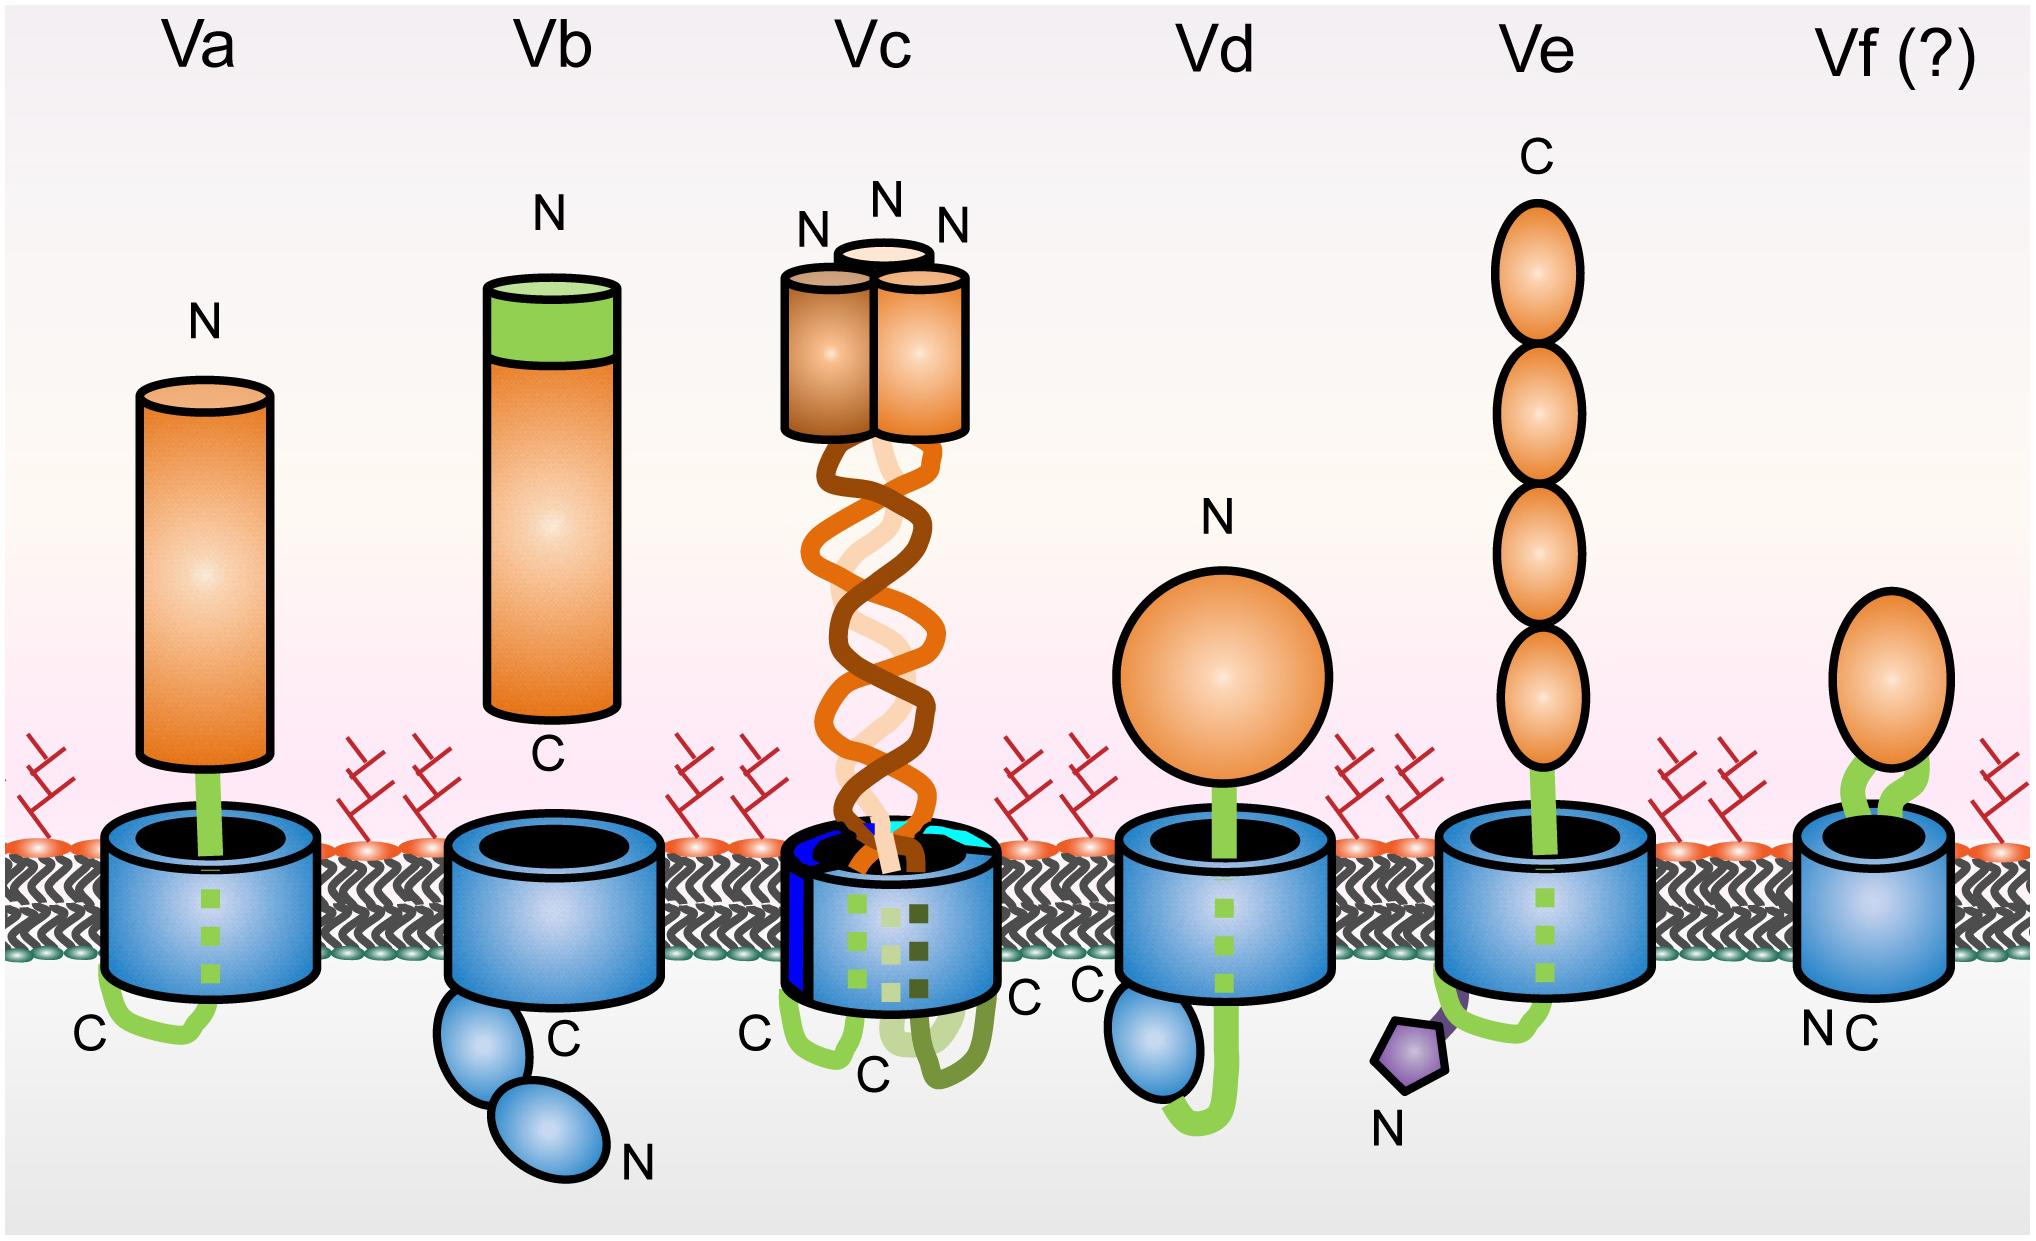 Frontiers | Type V Secretion Systems: An Overview of